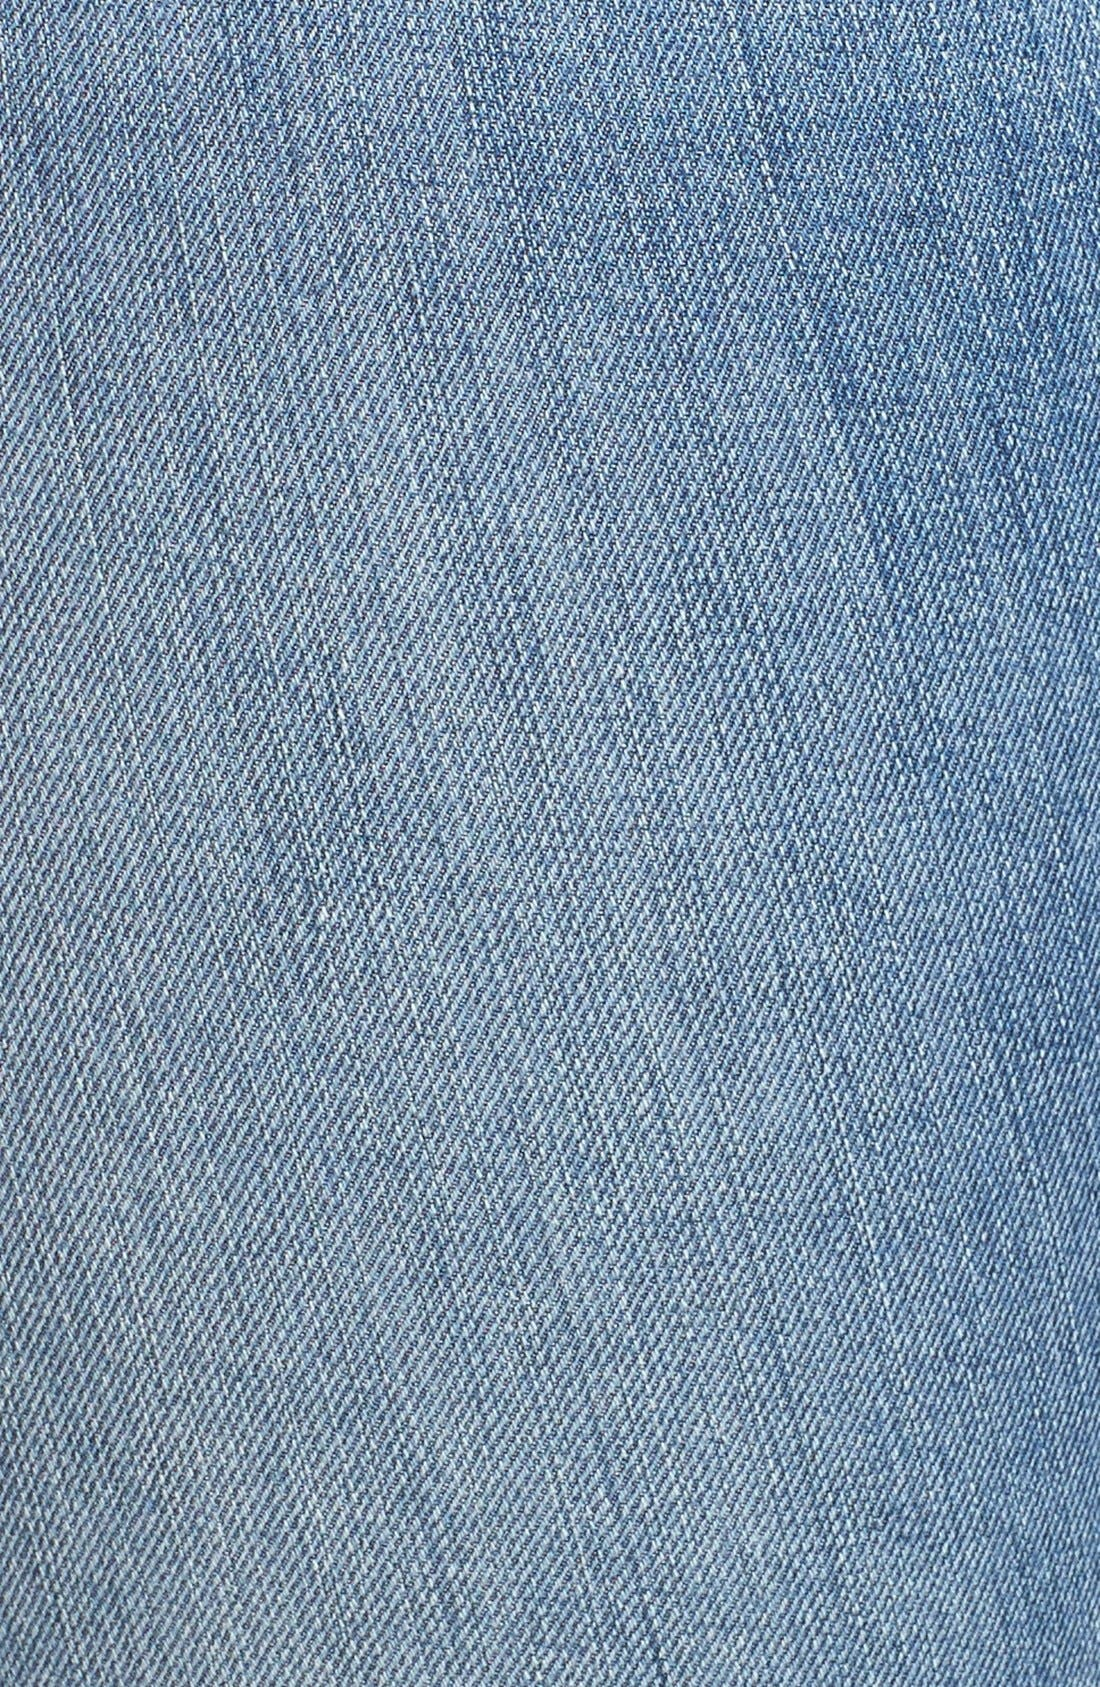 Alternate Image 10  - Good American Good Cuts High Rise Boyfriend Jeans (Blue 012) (Extended Sizes)